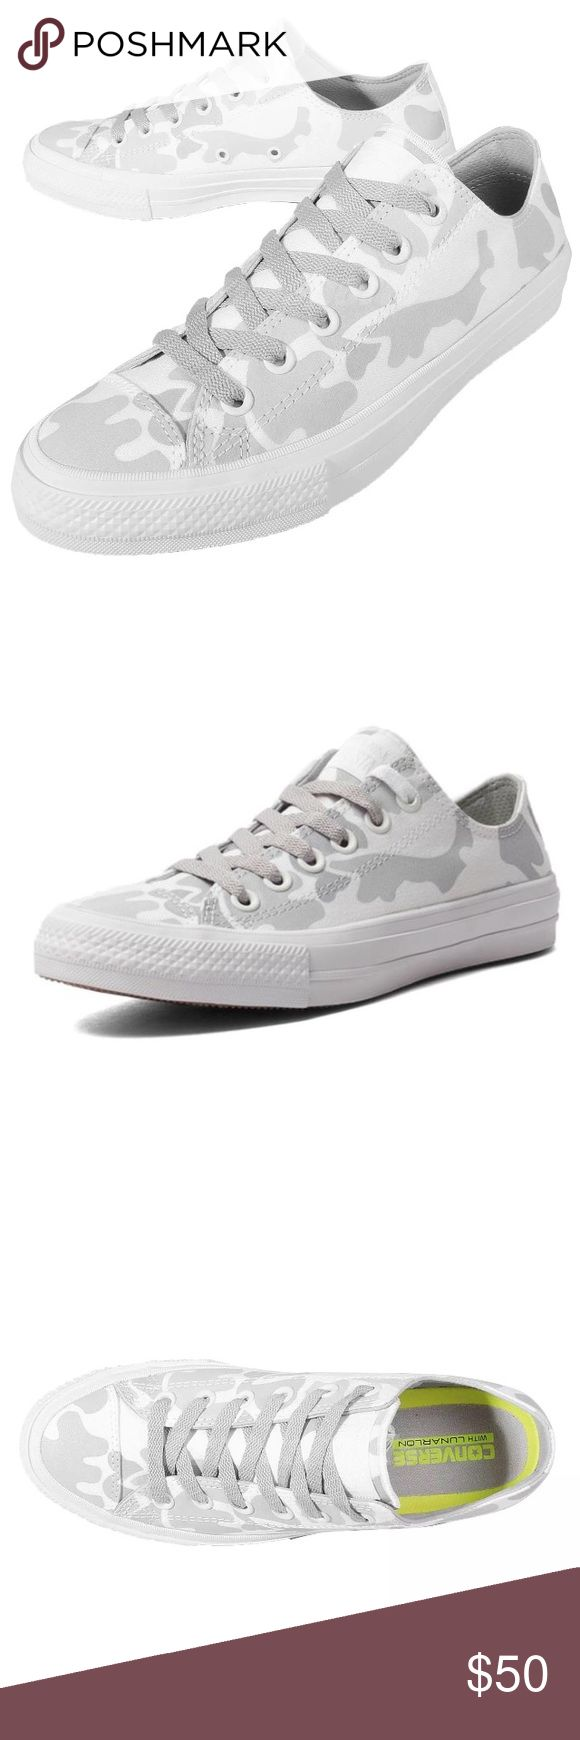 Converse Mens size 10 white shoes camo new Brand new without box Converse Shoes Sneakers